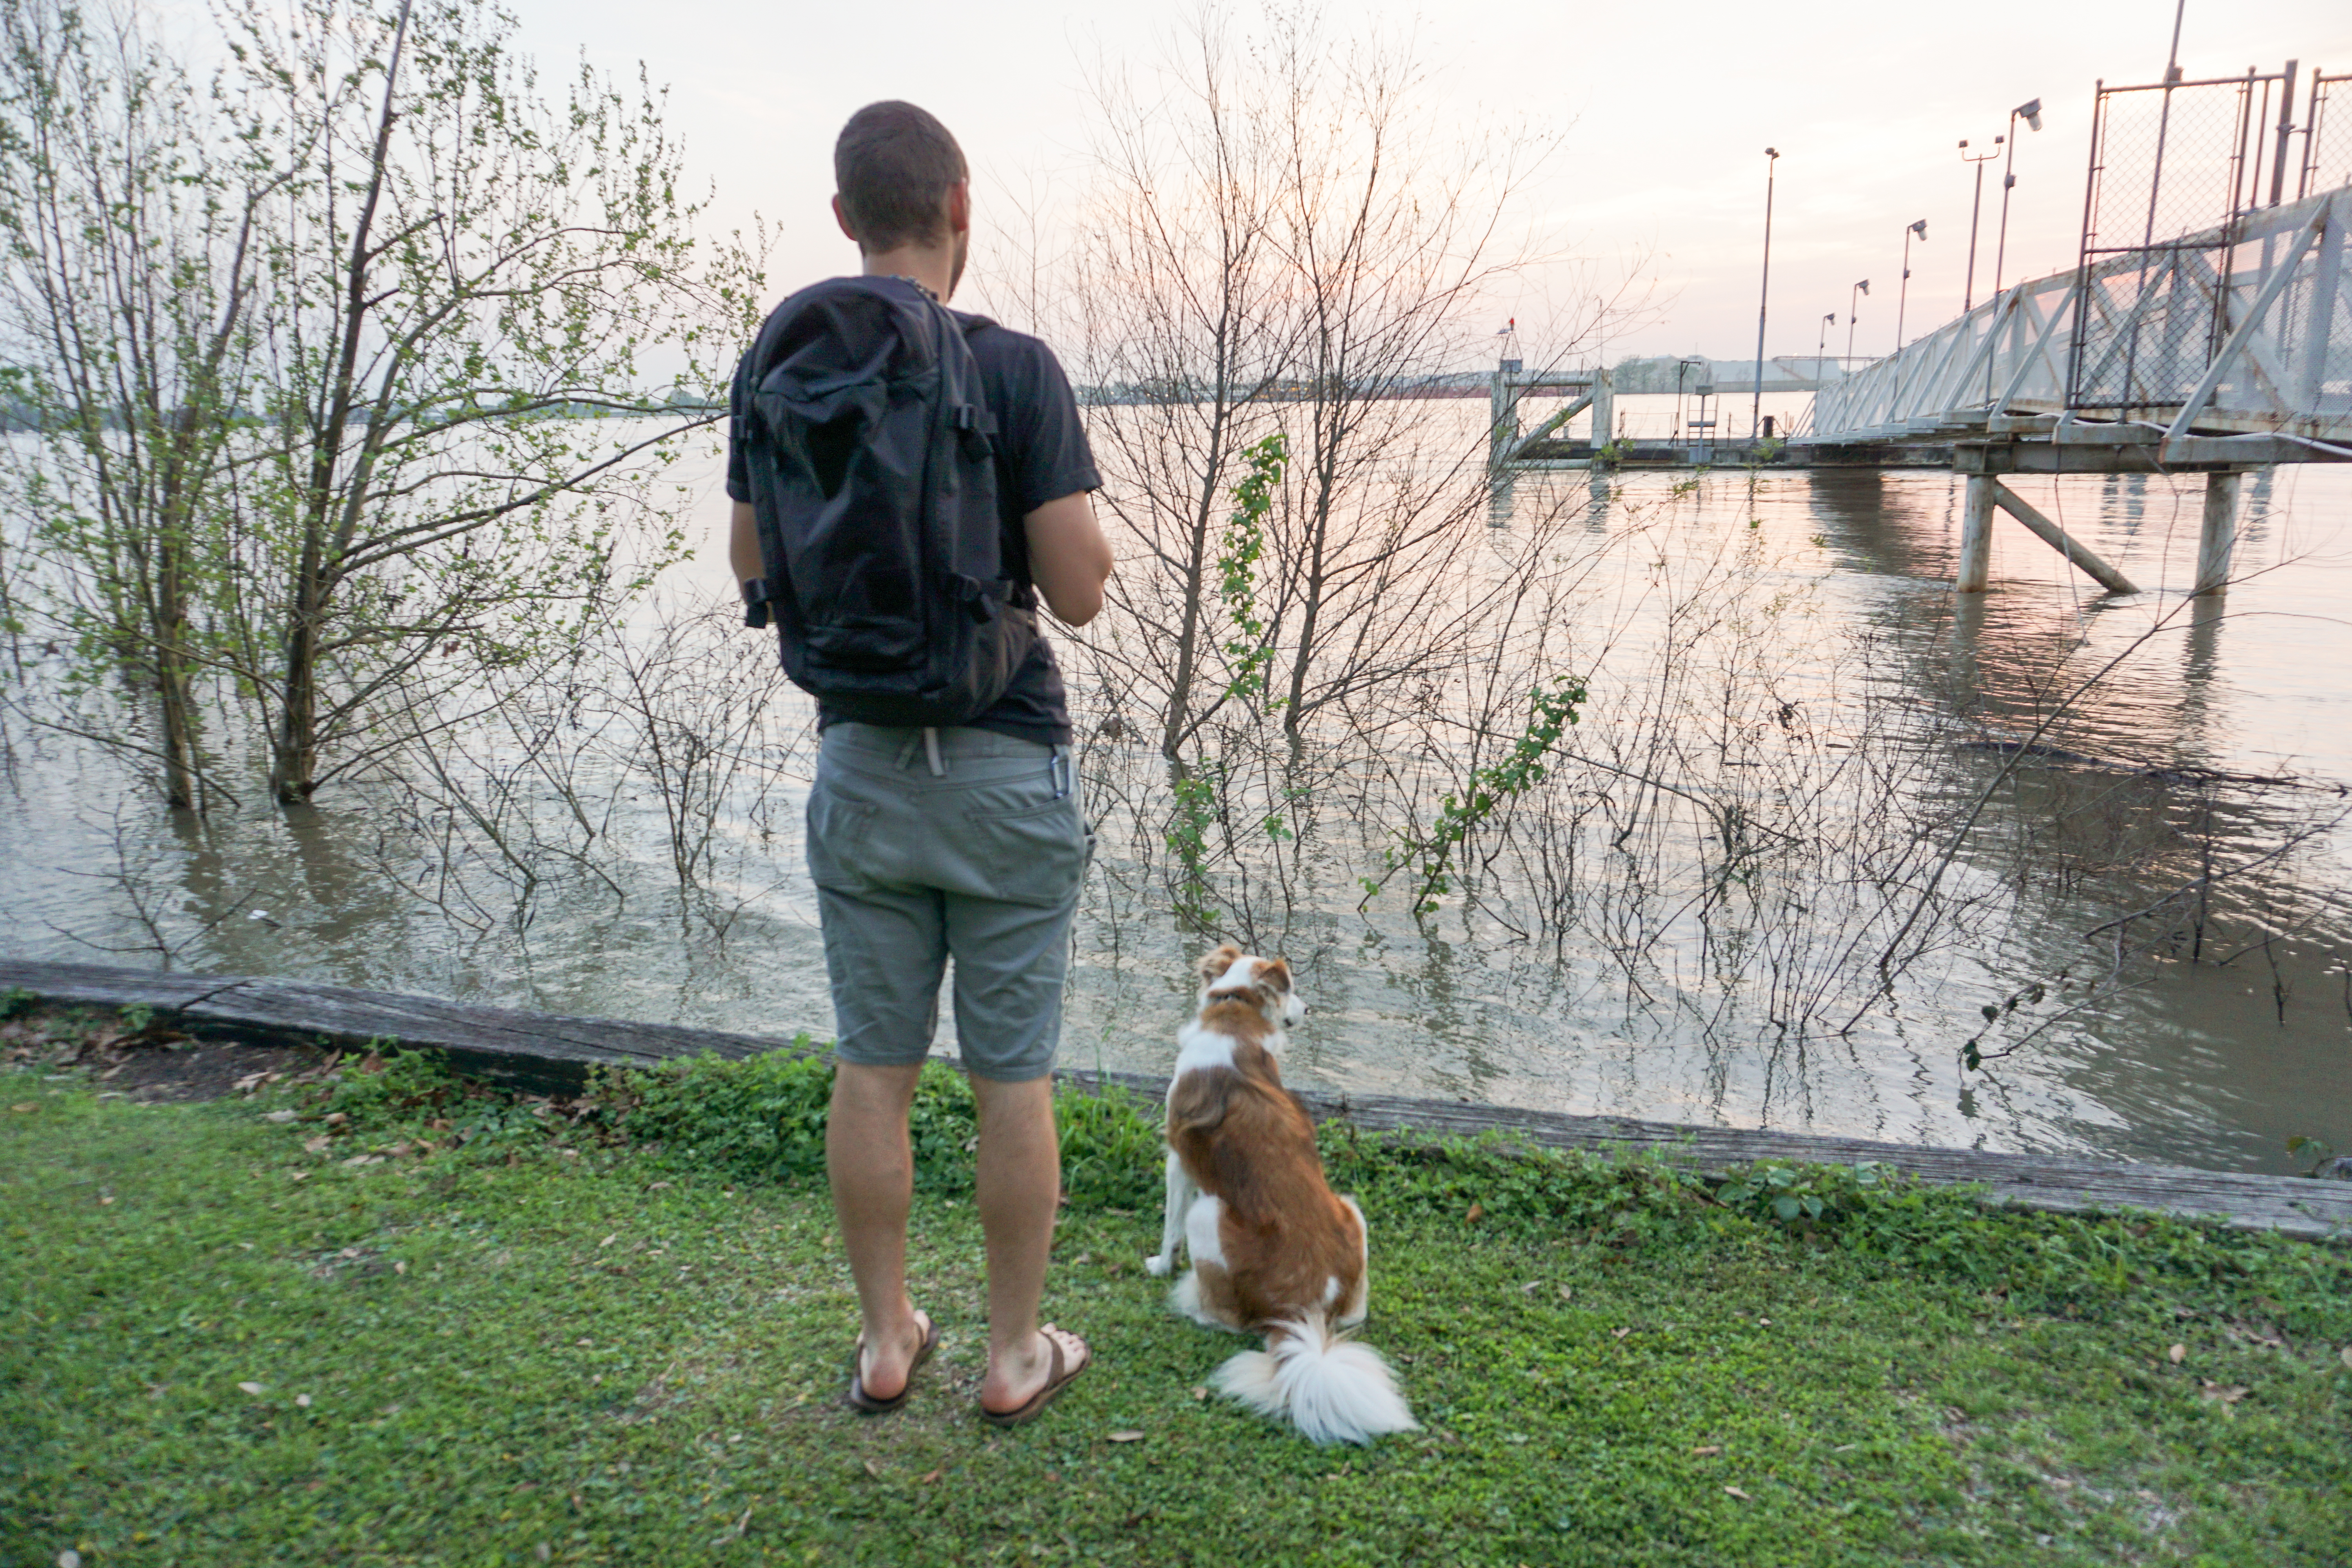 EVERGOODS MPL 30 Backpack review on body